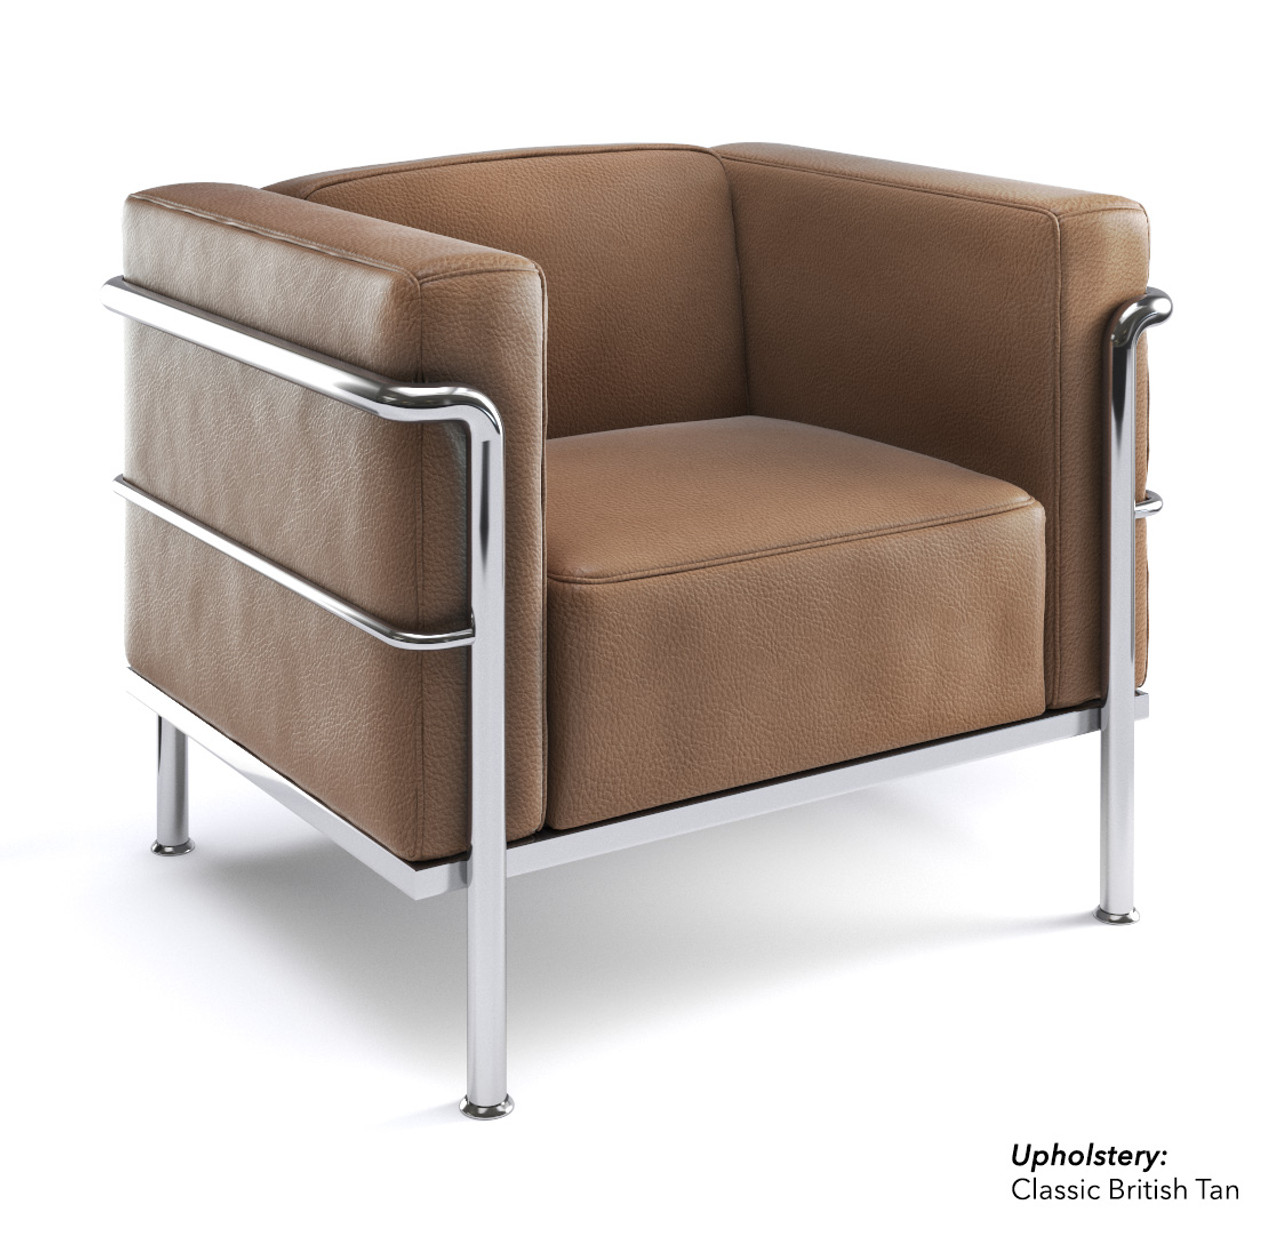 Le corbusier style elegant chair modernlinefurniture